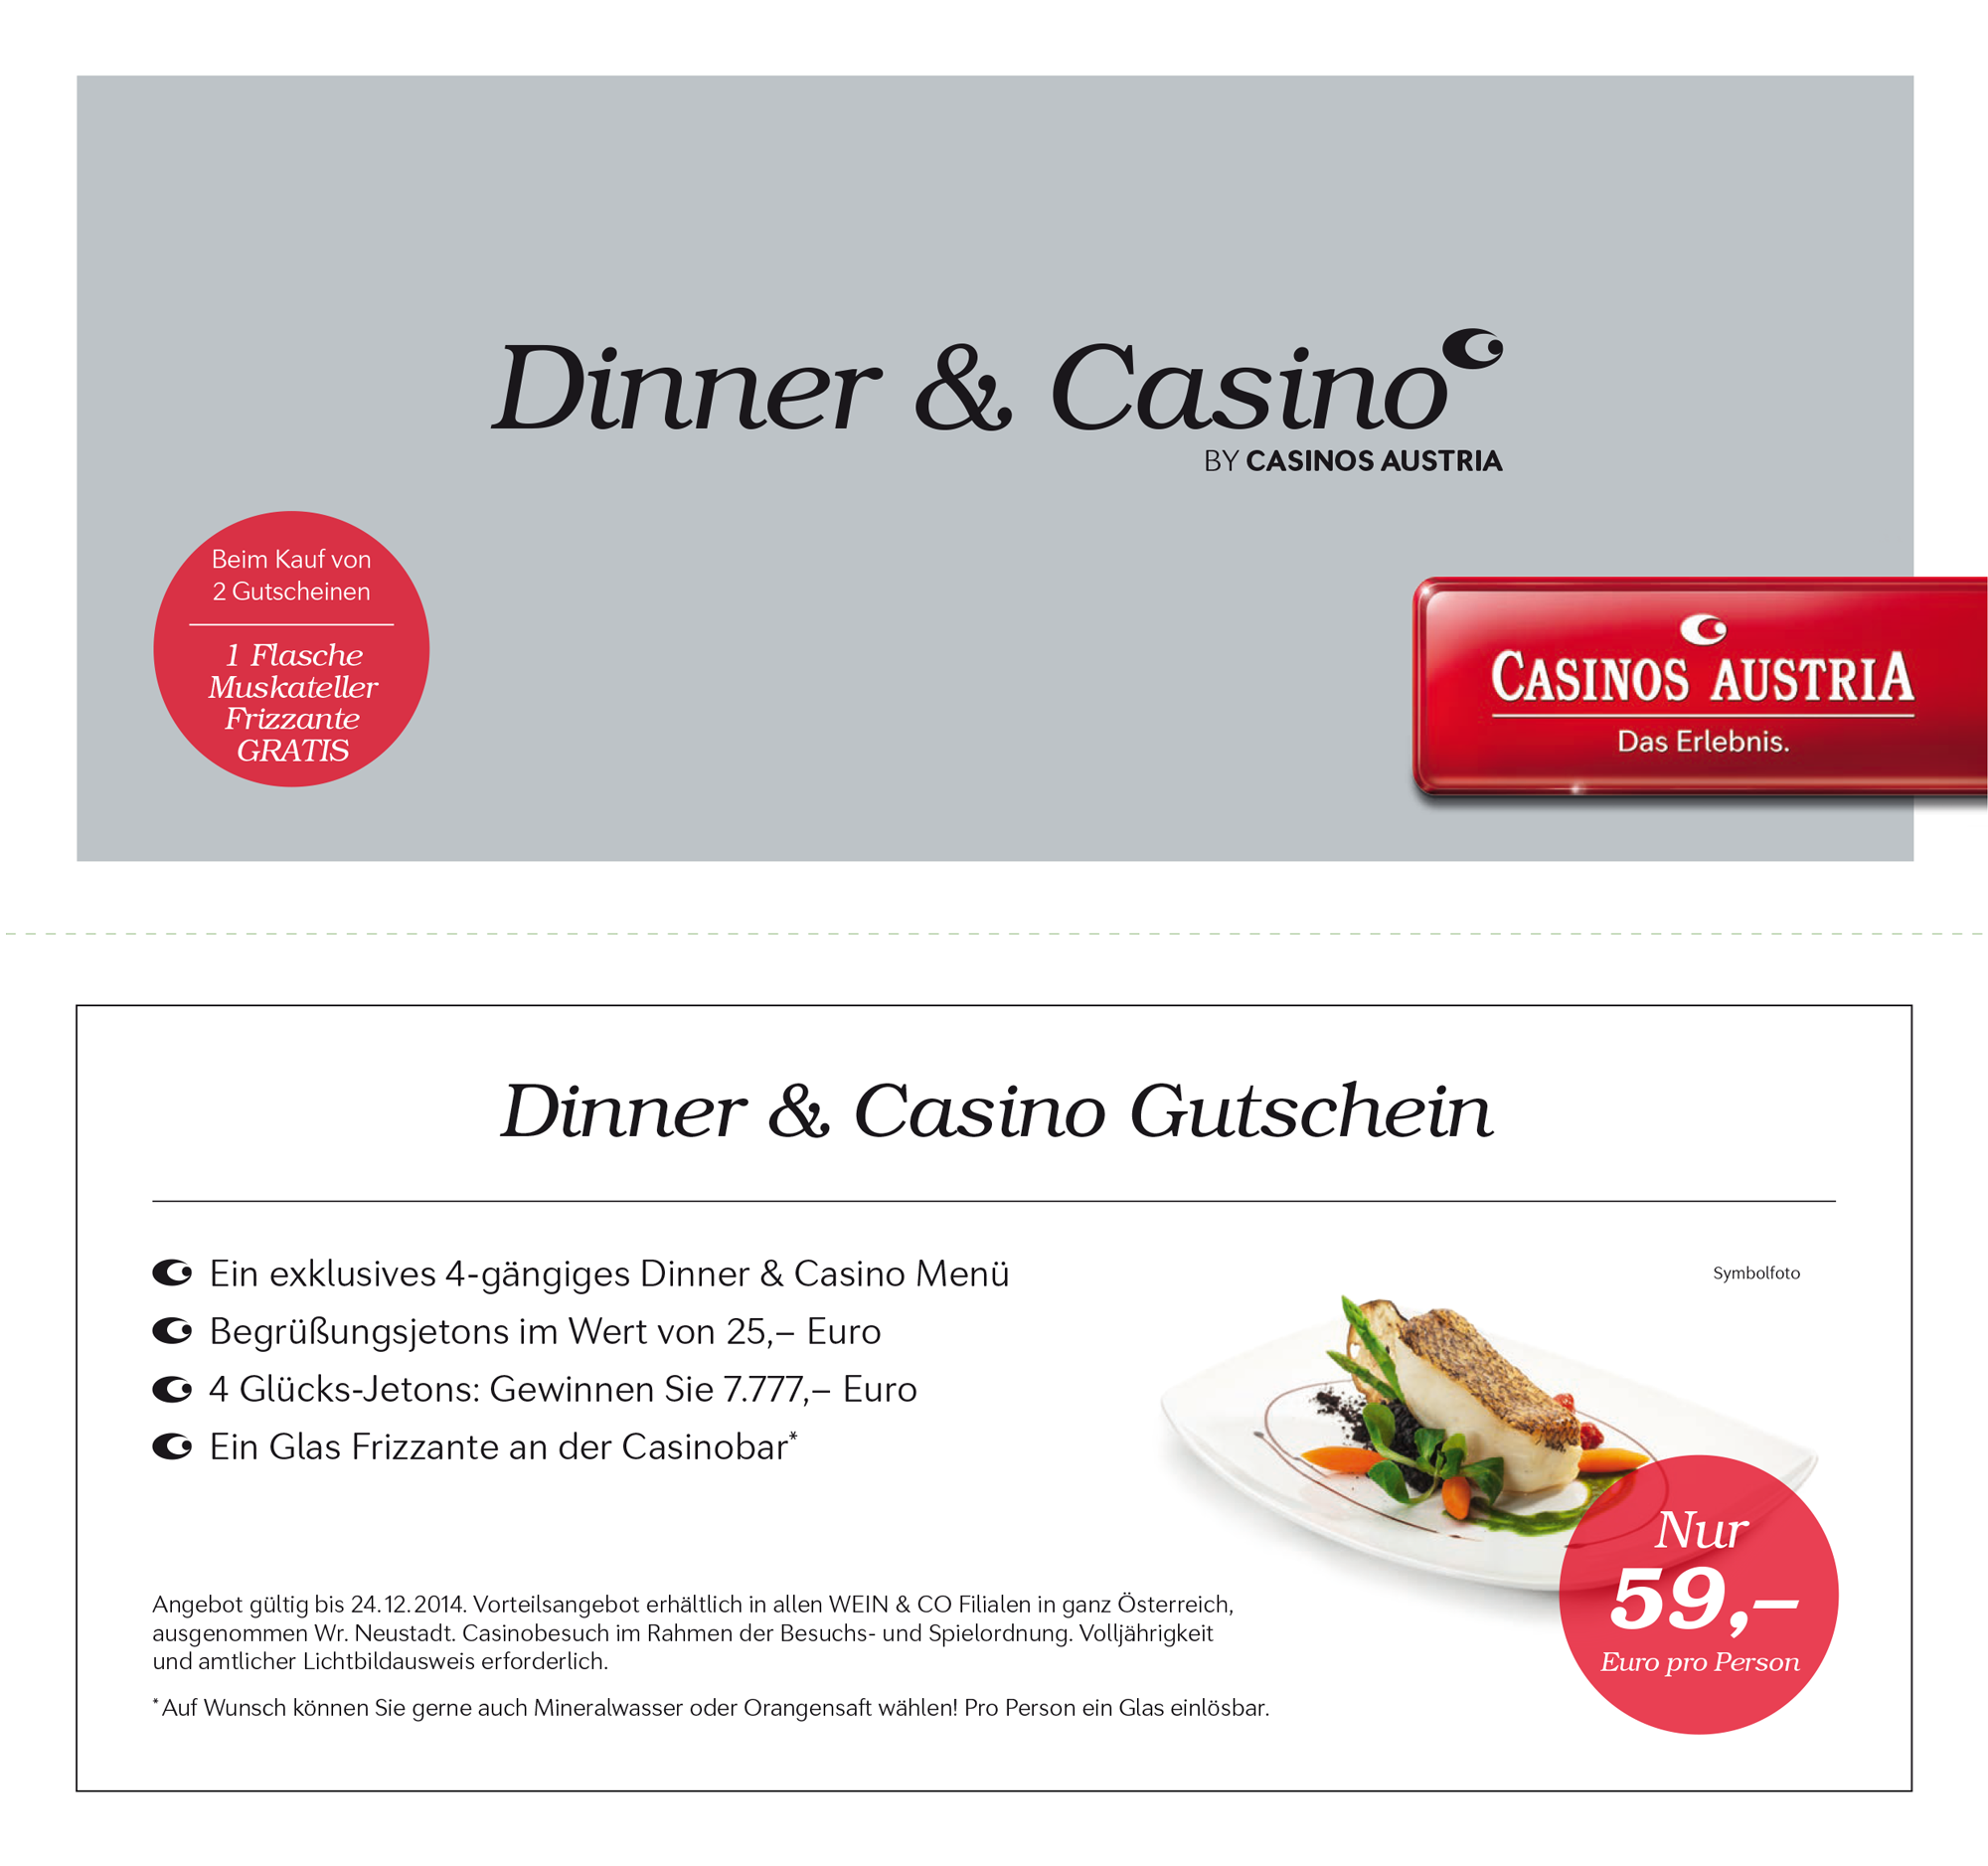 dinner & casino gutschein